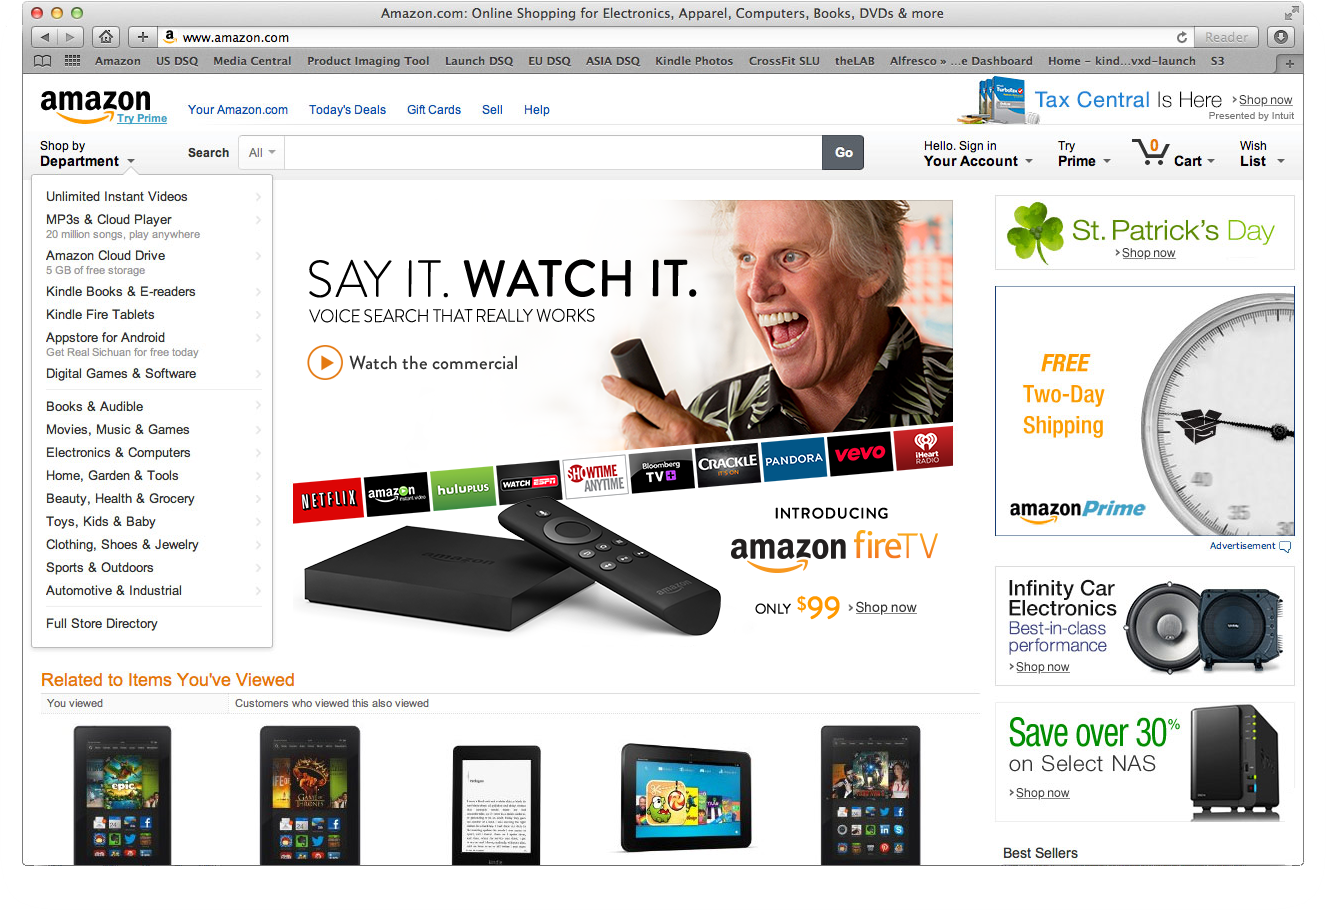 Amazon Fire TV Announcement featuring Gary Busey